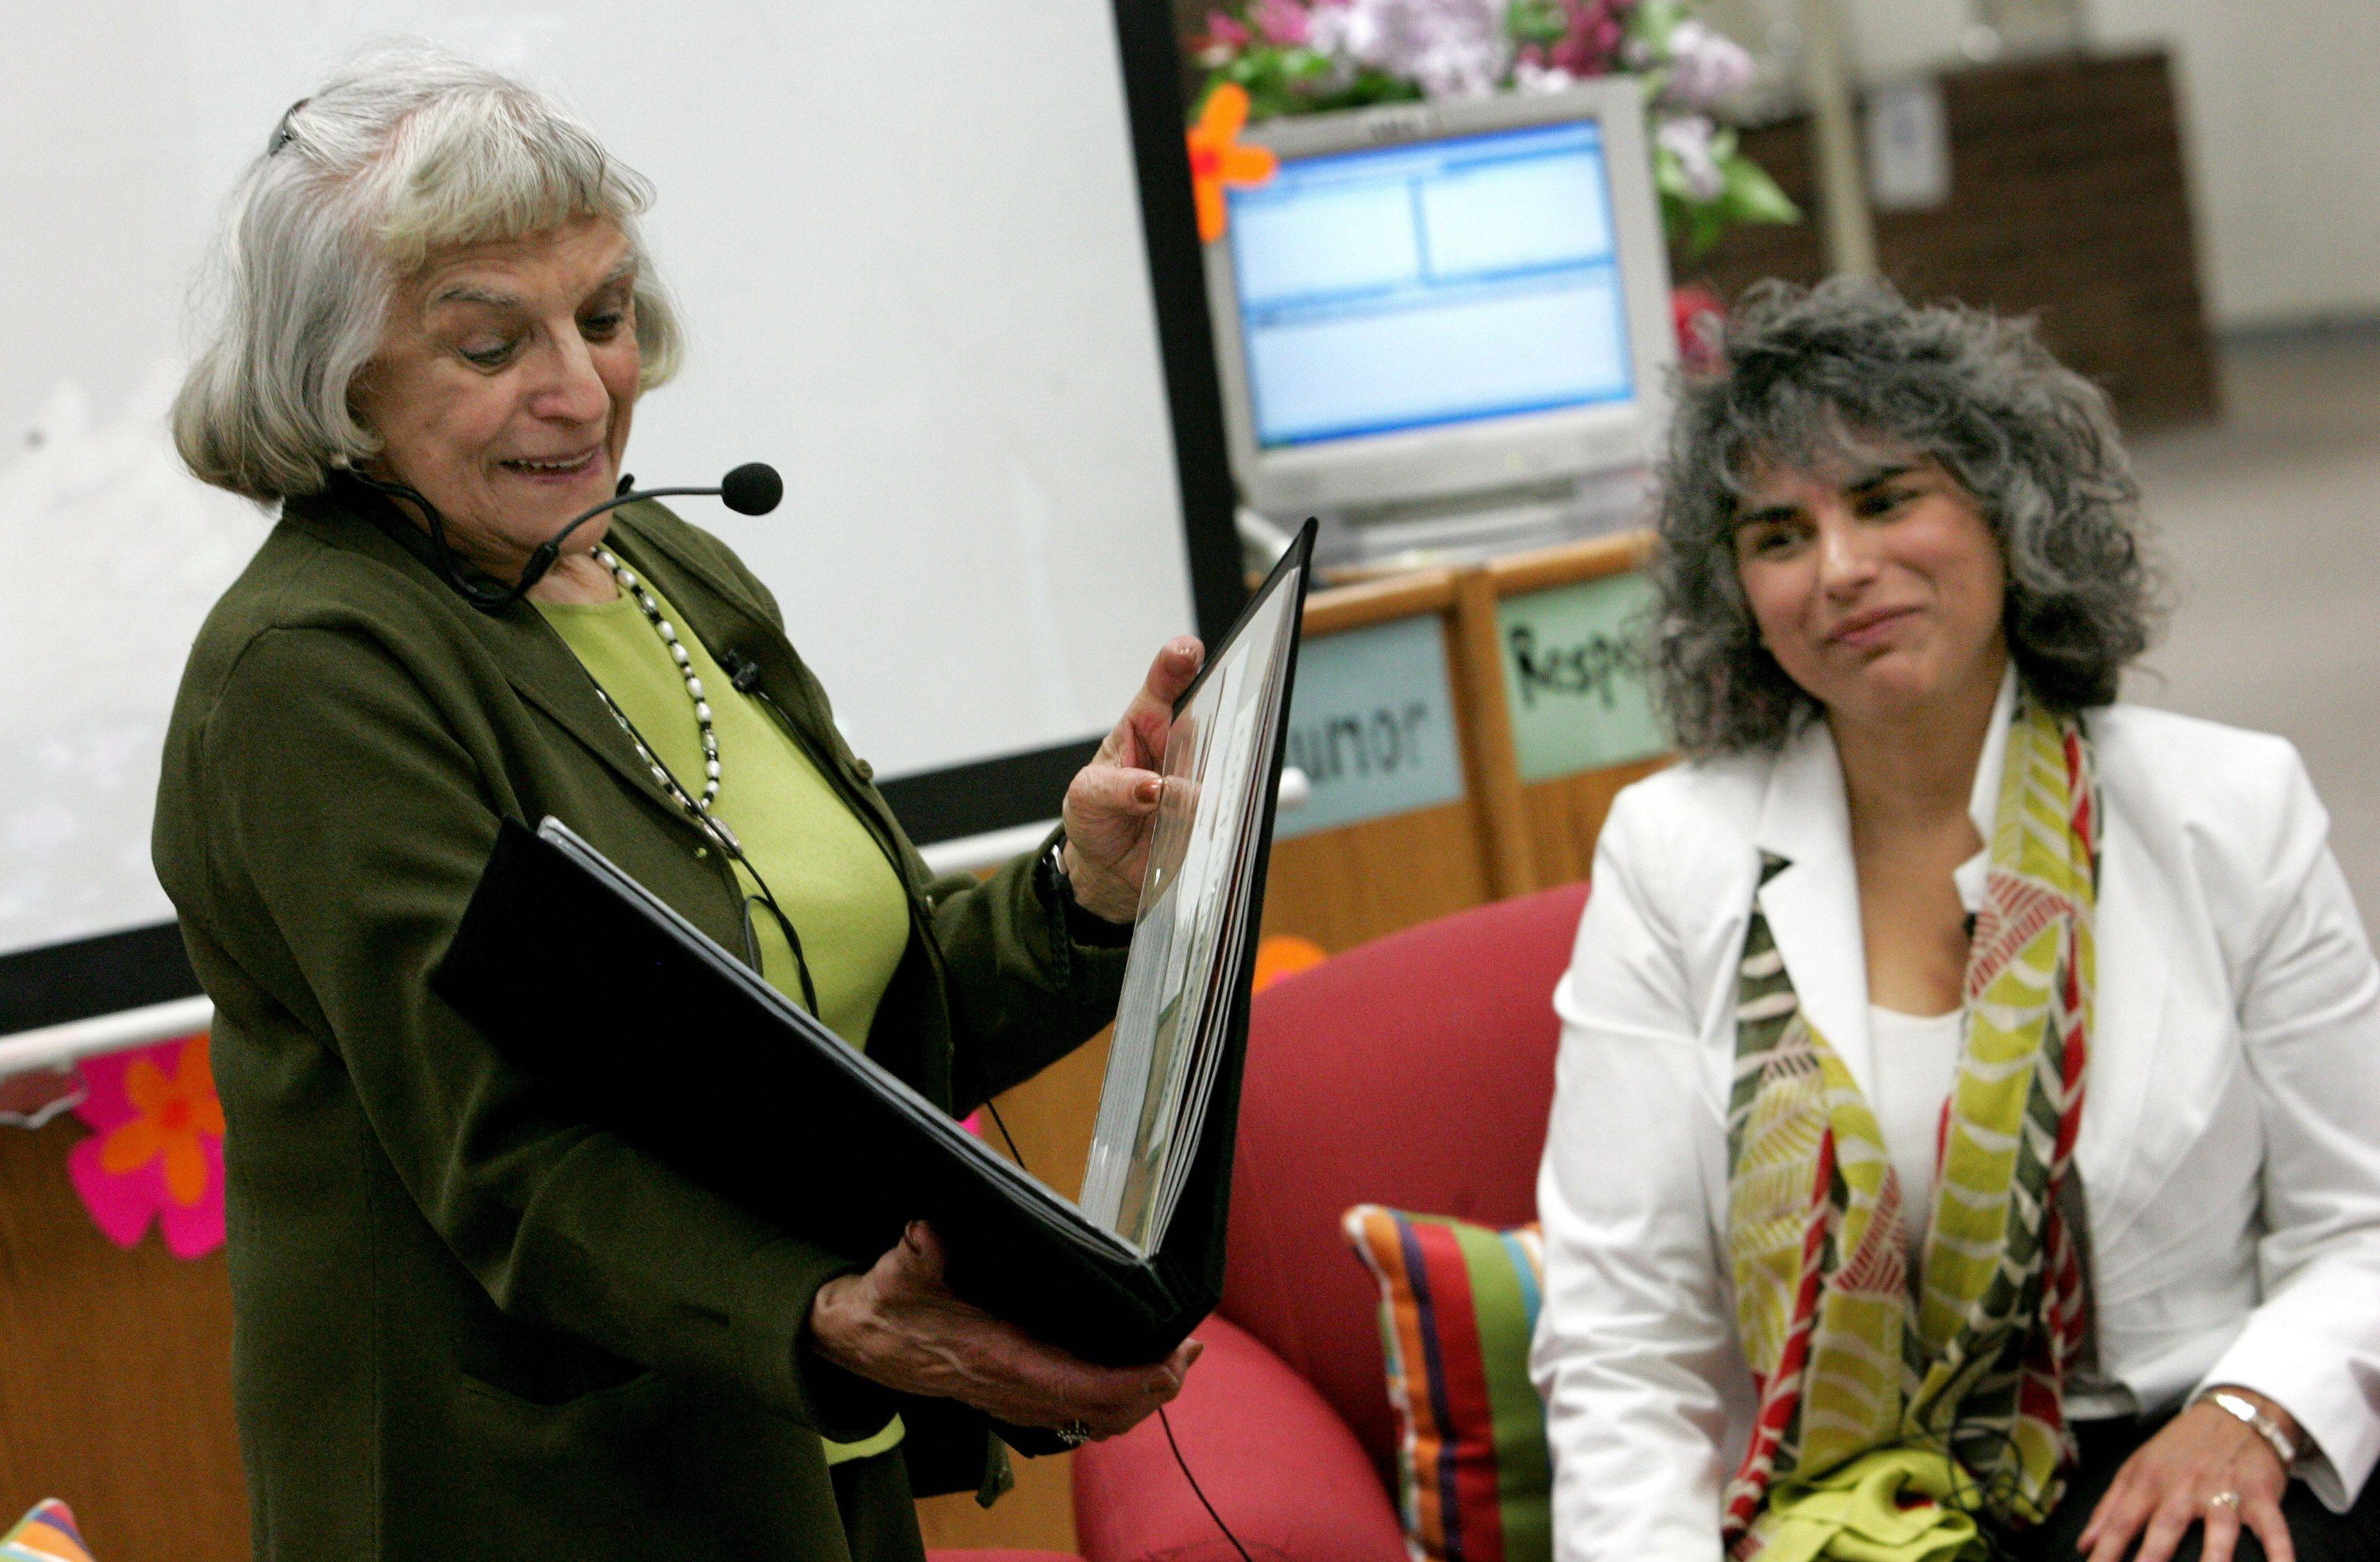 Madison Junior High School eighth-graders presented Edith Westerfeld and her daughter Fern Schumer Chapman with a scrapbook documenting the student's research efforts to track down Greda Katz.